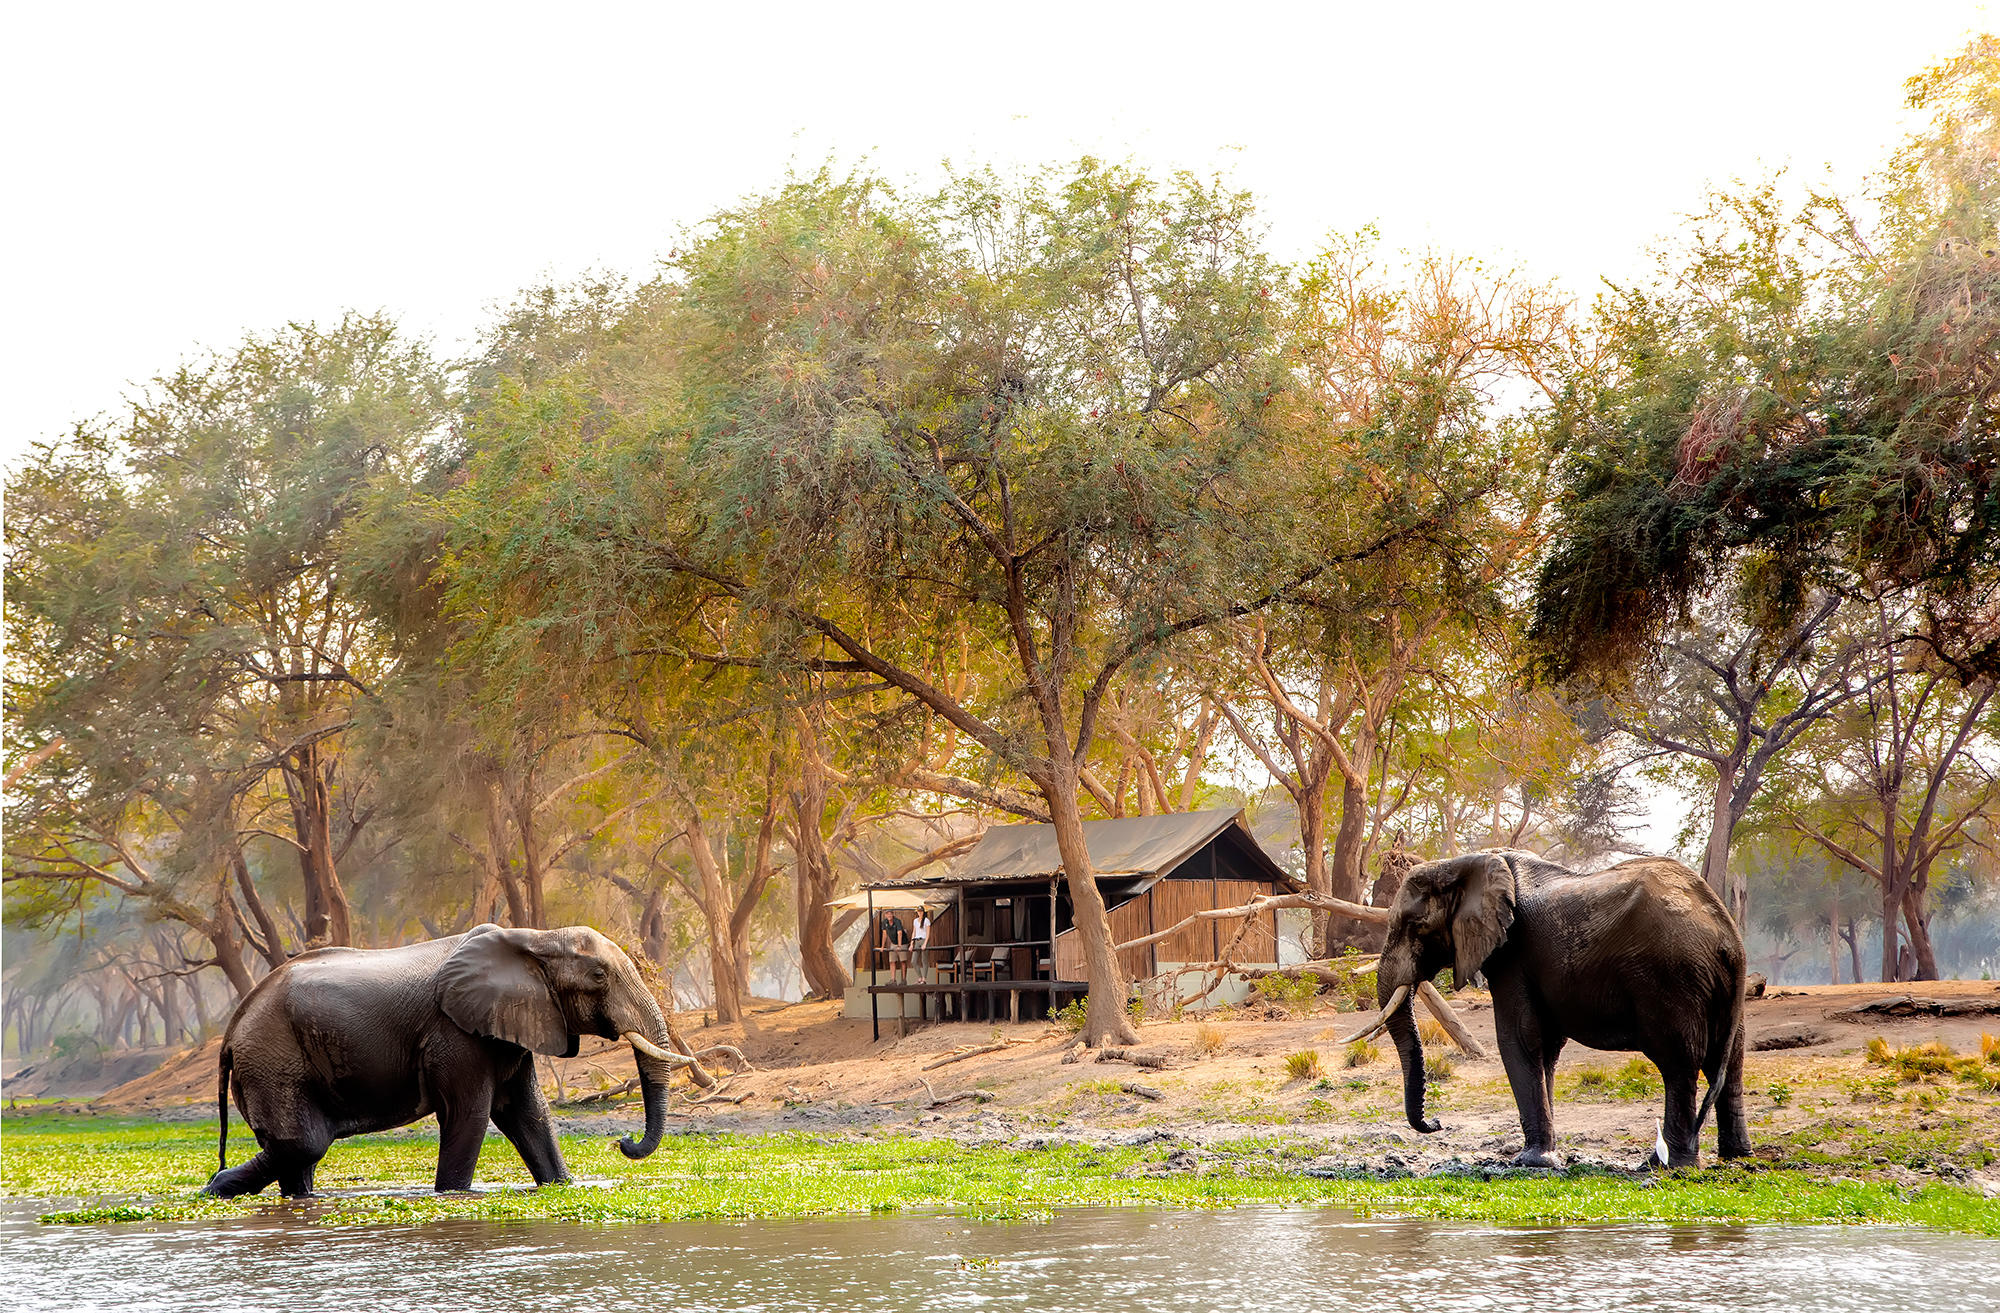 Old Mondoro tents with elephants as neighbours